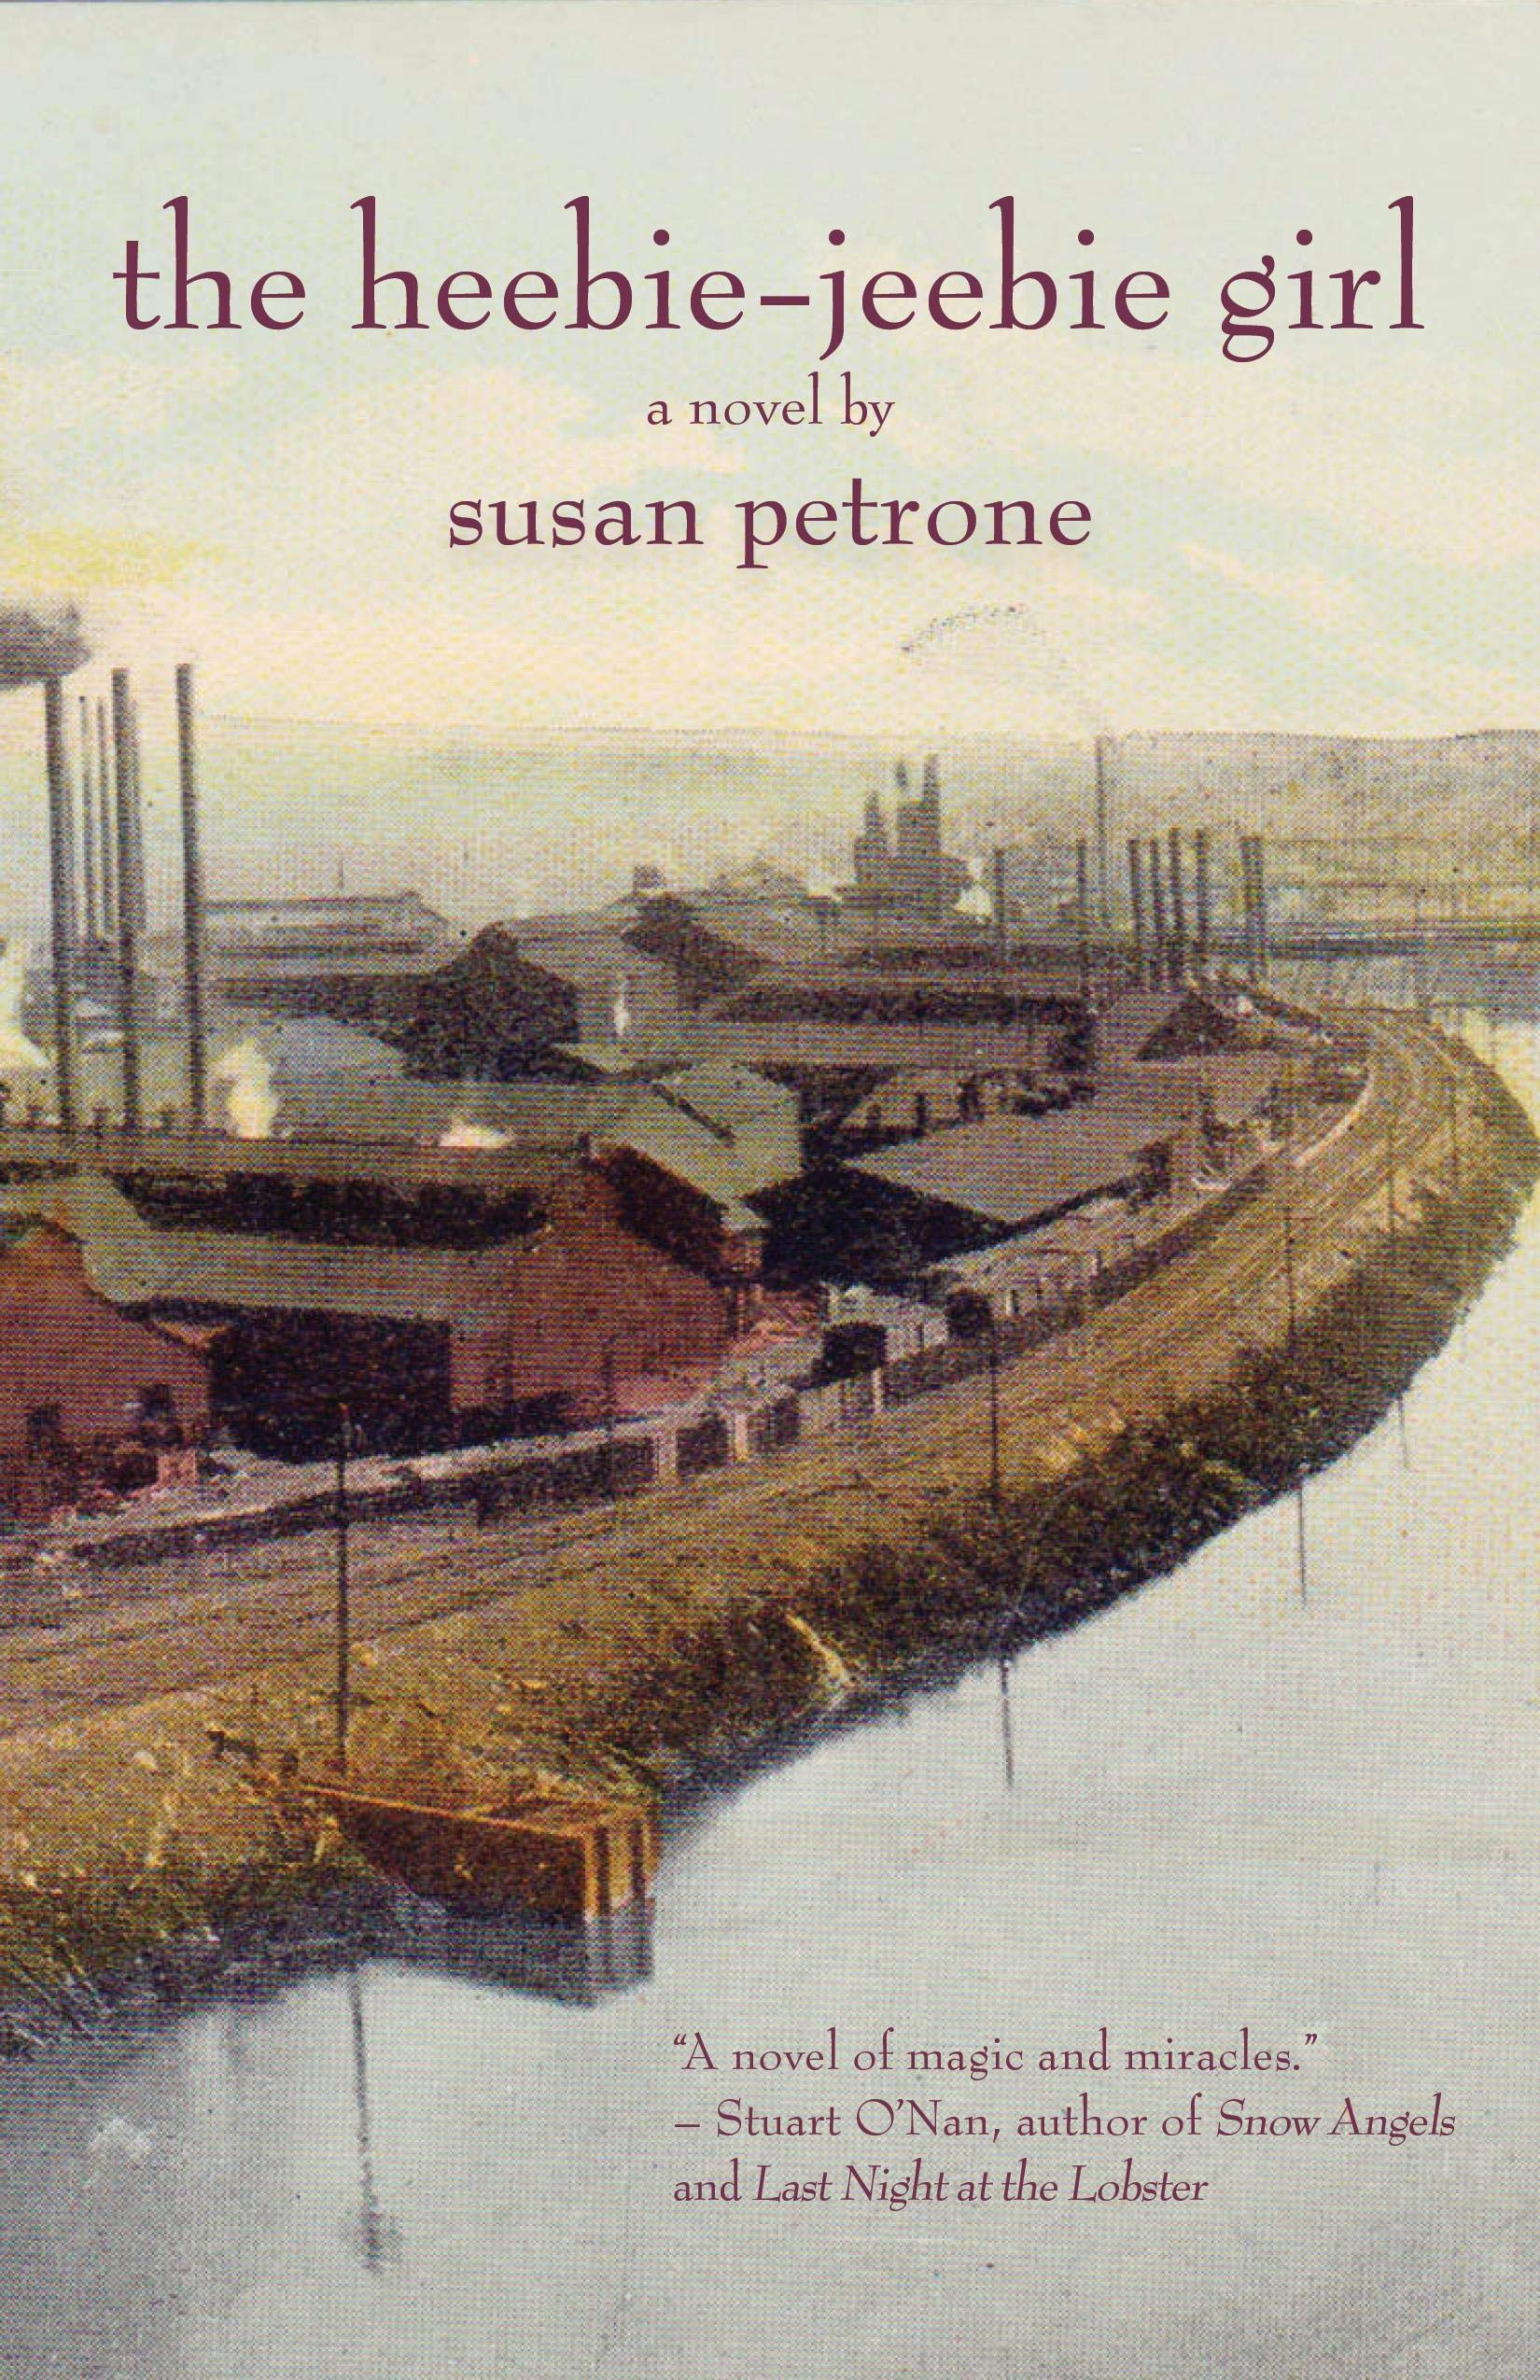 Author Susan Petrone: Every Word of This is True, Except for the Parts I Made Up